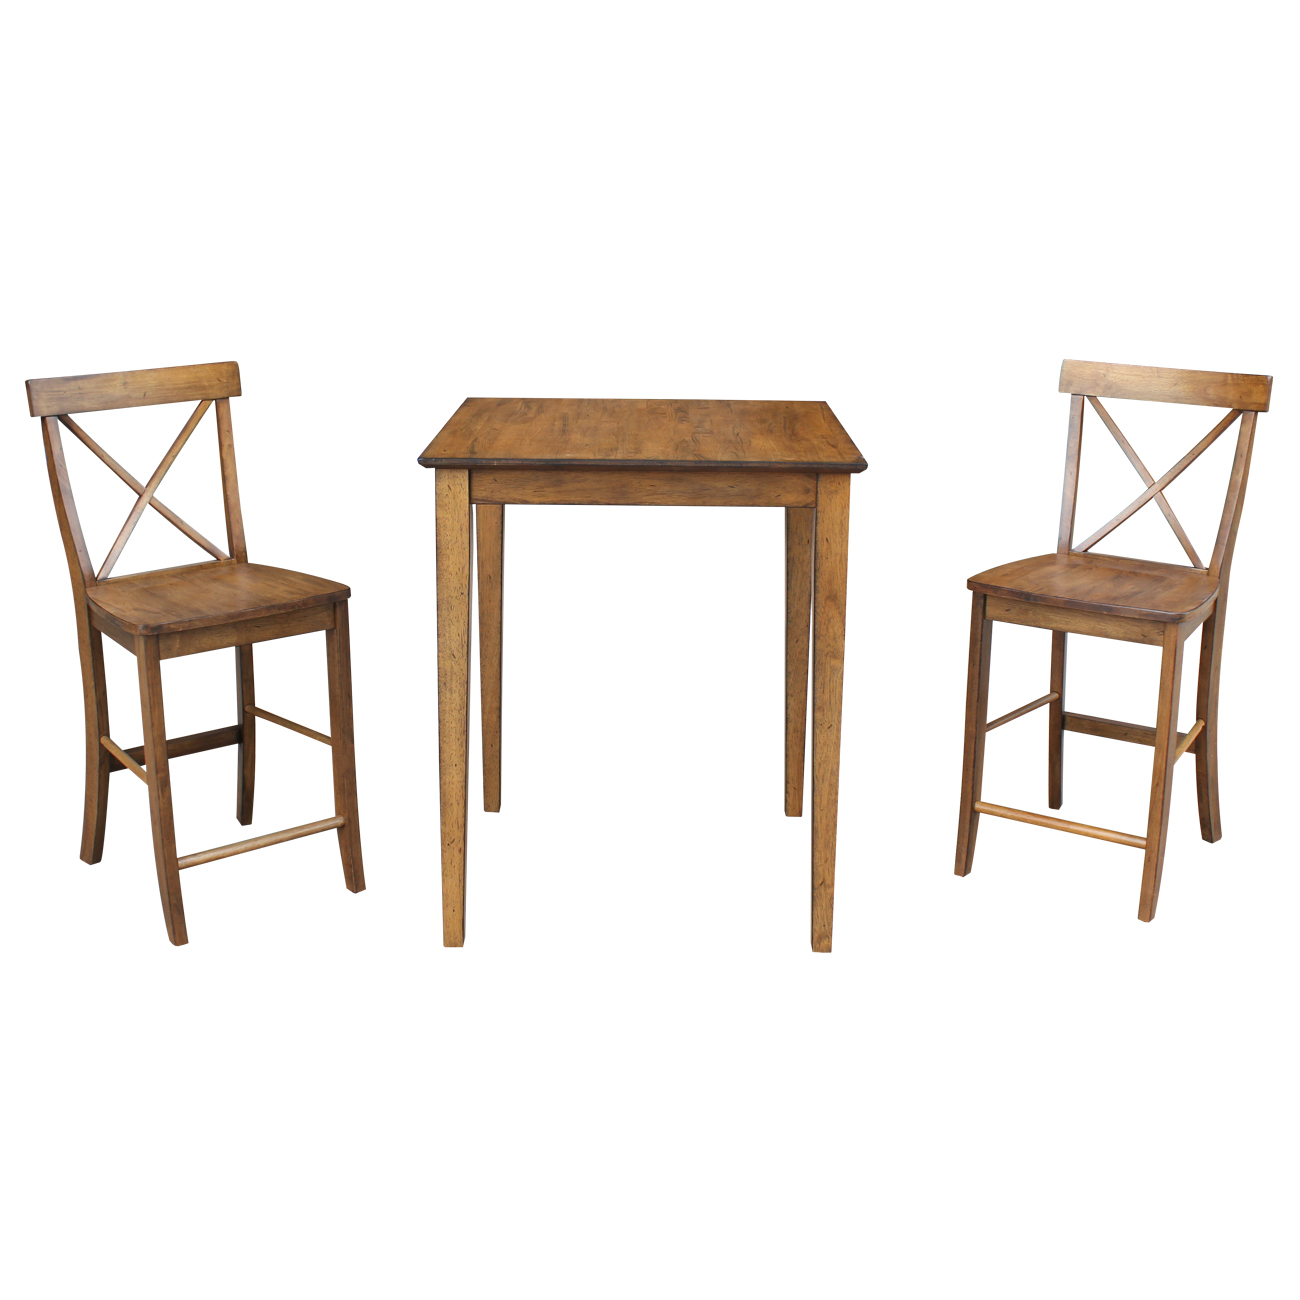 "30"" x 30"" Counter Height Table with 2 X-back Stools in Pecan - Set of 3"